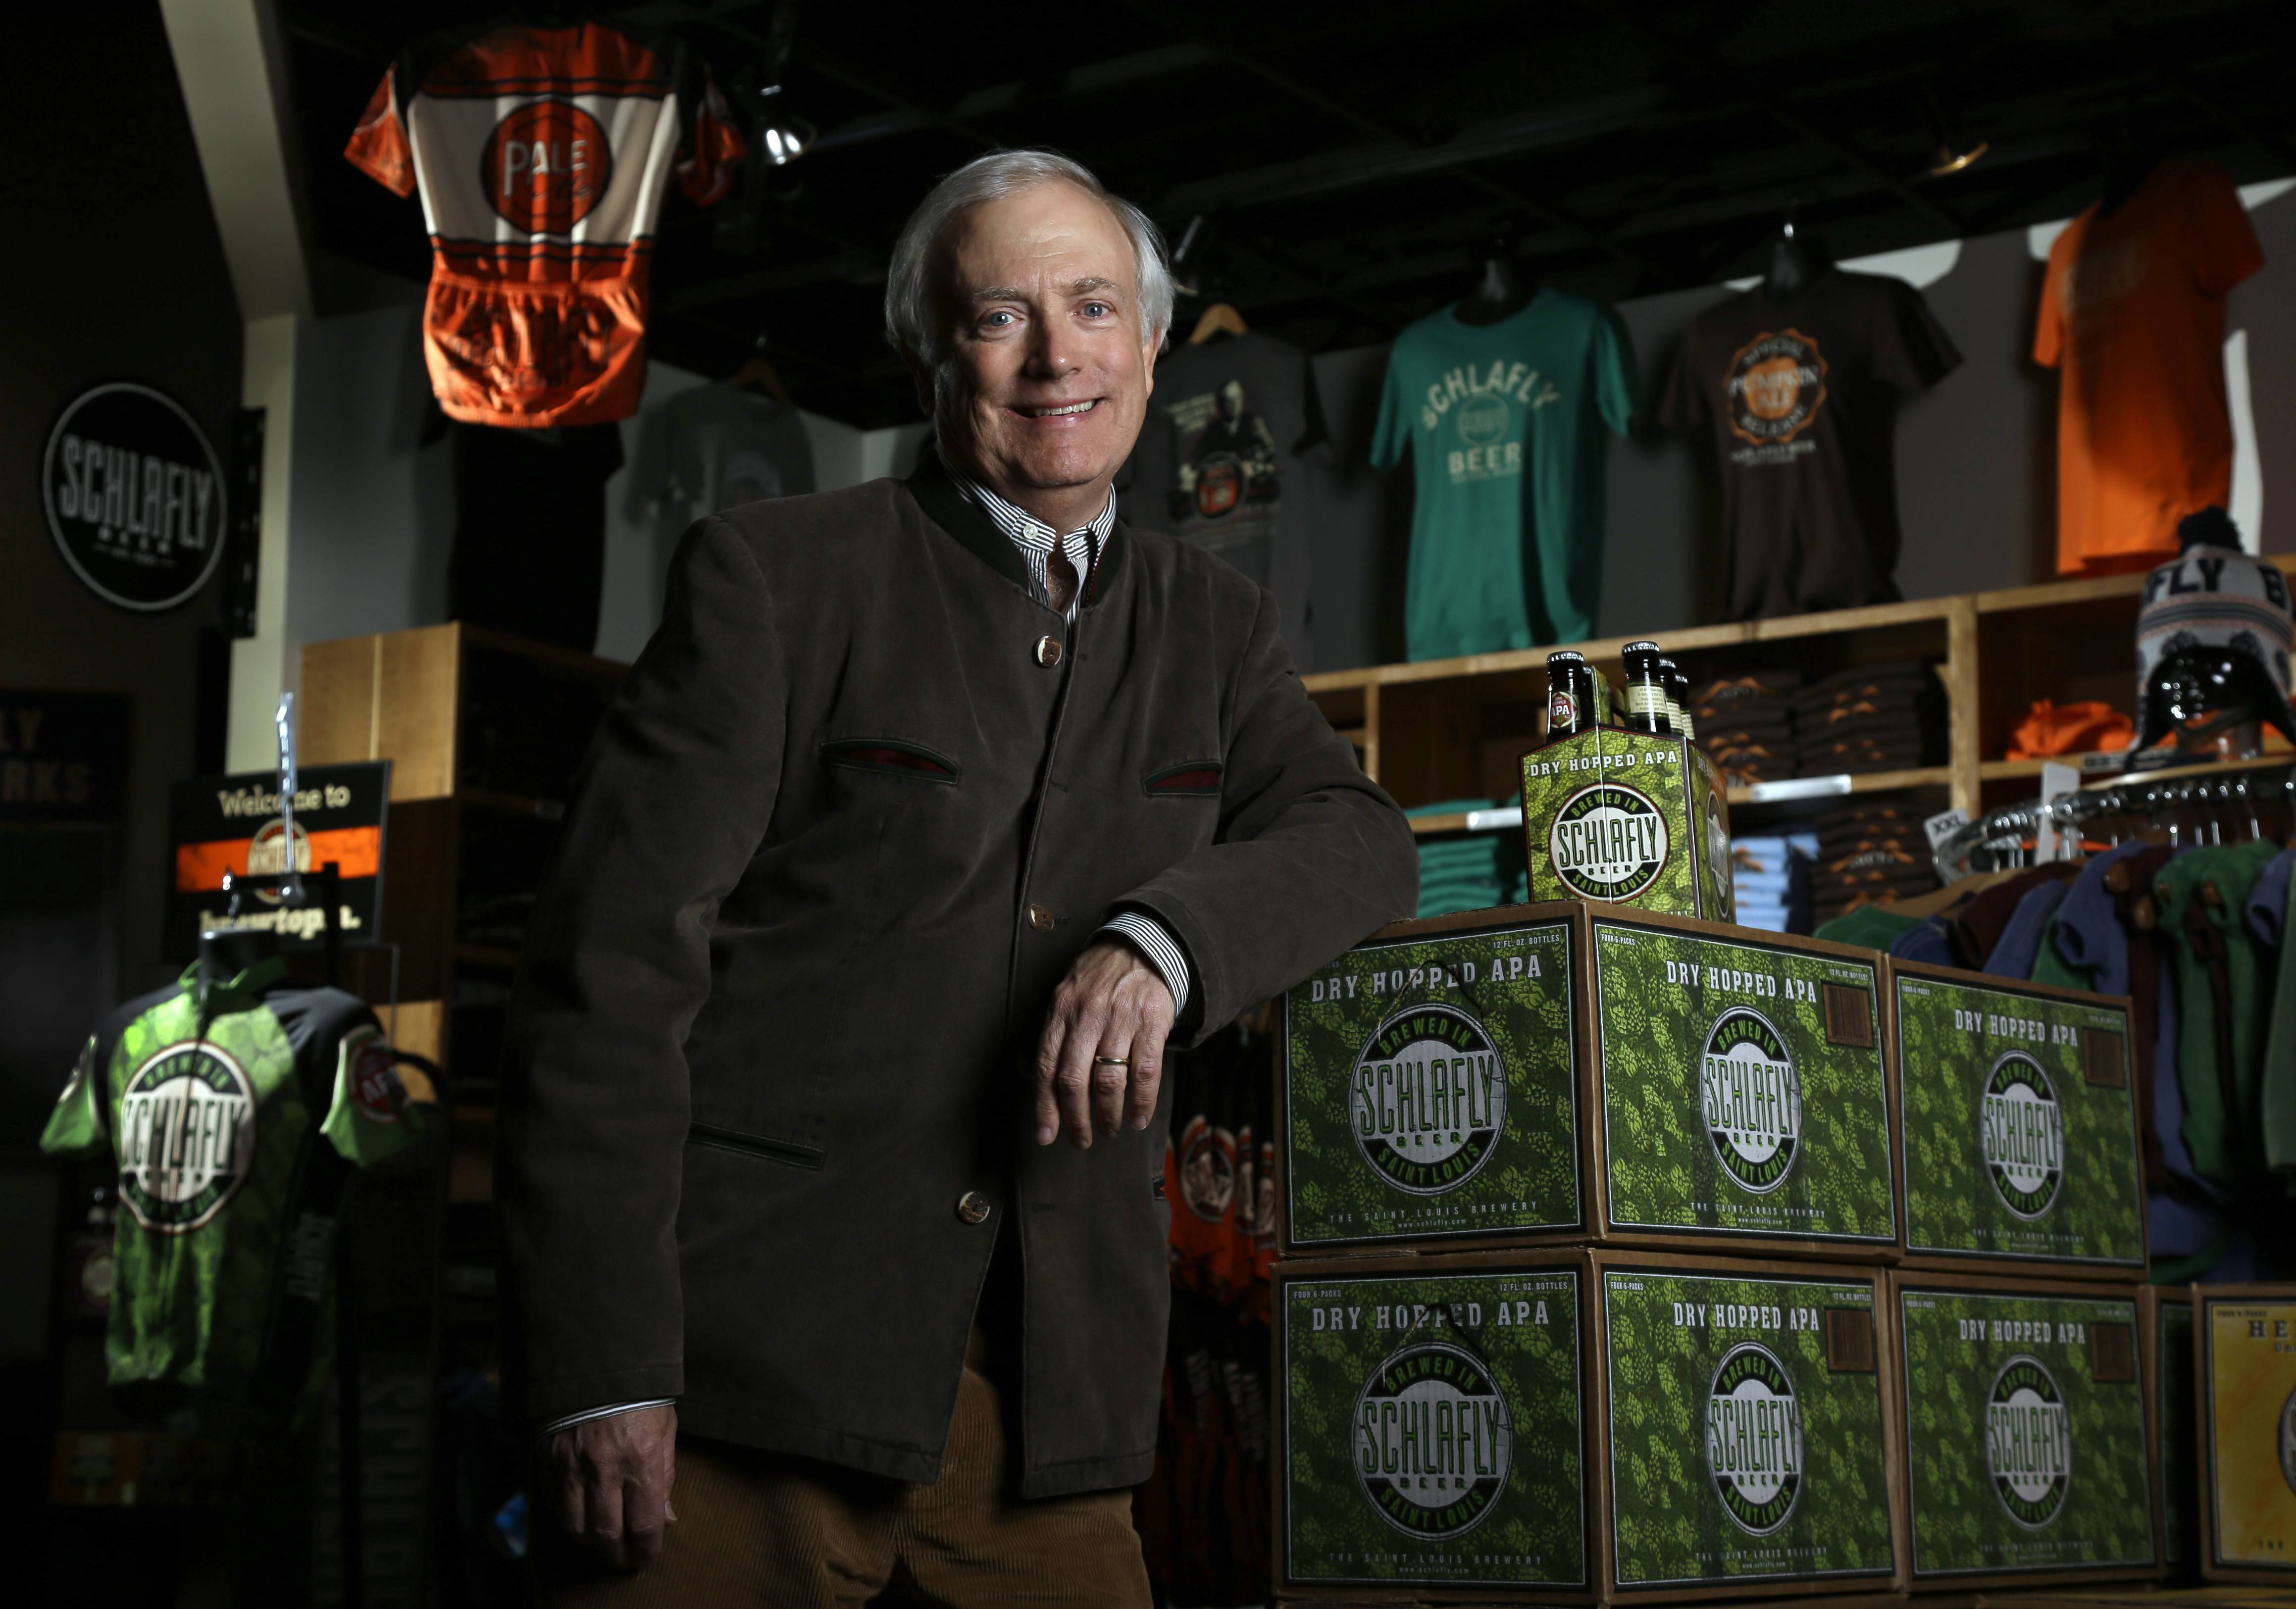 Tom Schlafly, co-founder of the brewery which produces the Schlafly brand of beers in Maplewood, Mo., has been in a trademark dispute with his aunt, conservative activist Phyllis Schlafly, over whether Schlafly is primarily a last name or a commercial brand that deserves legal protection.